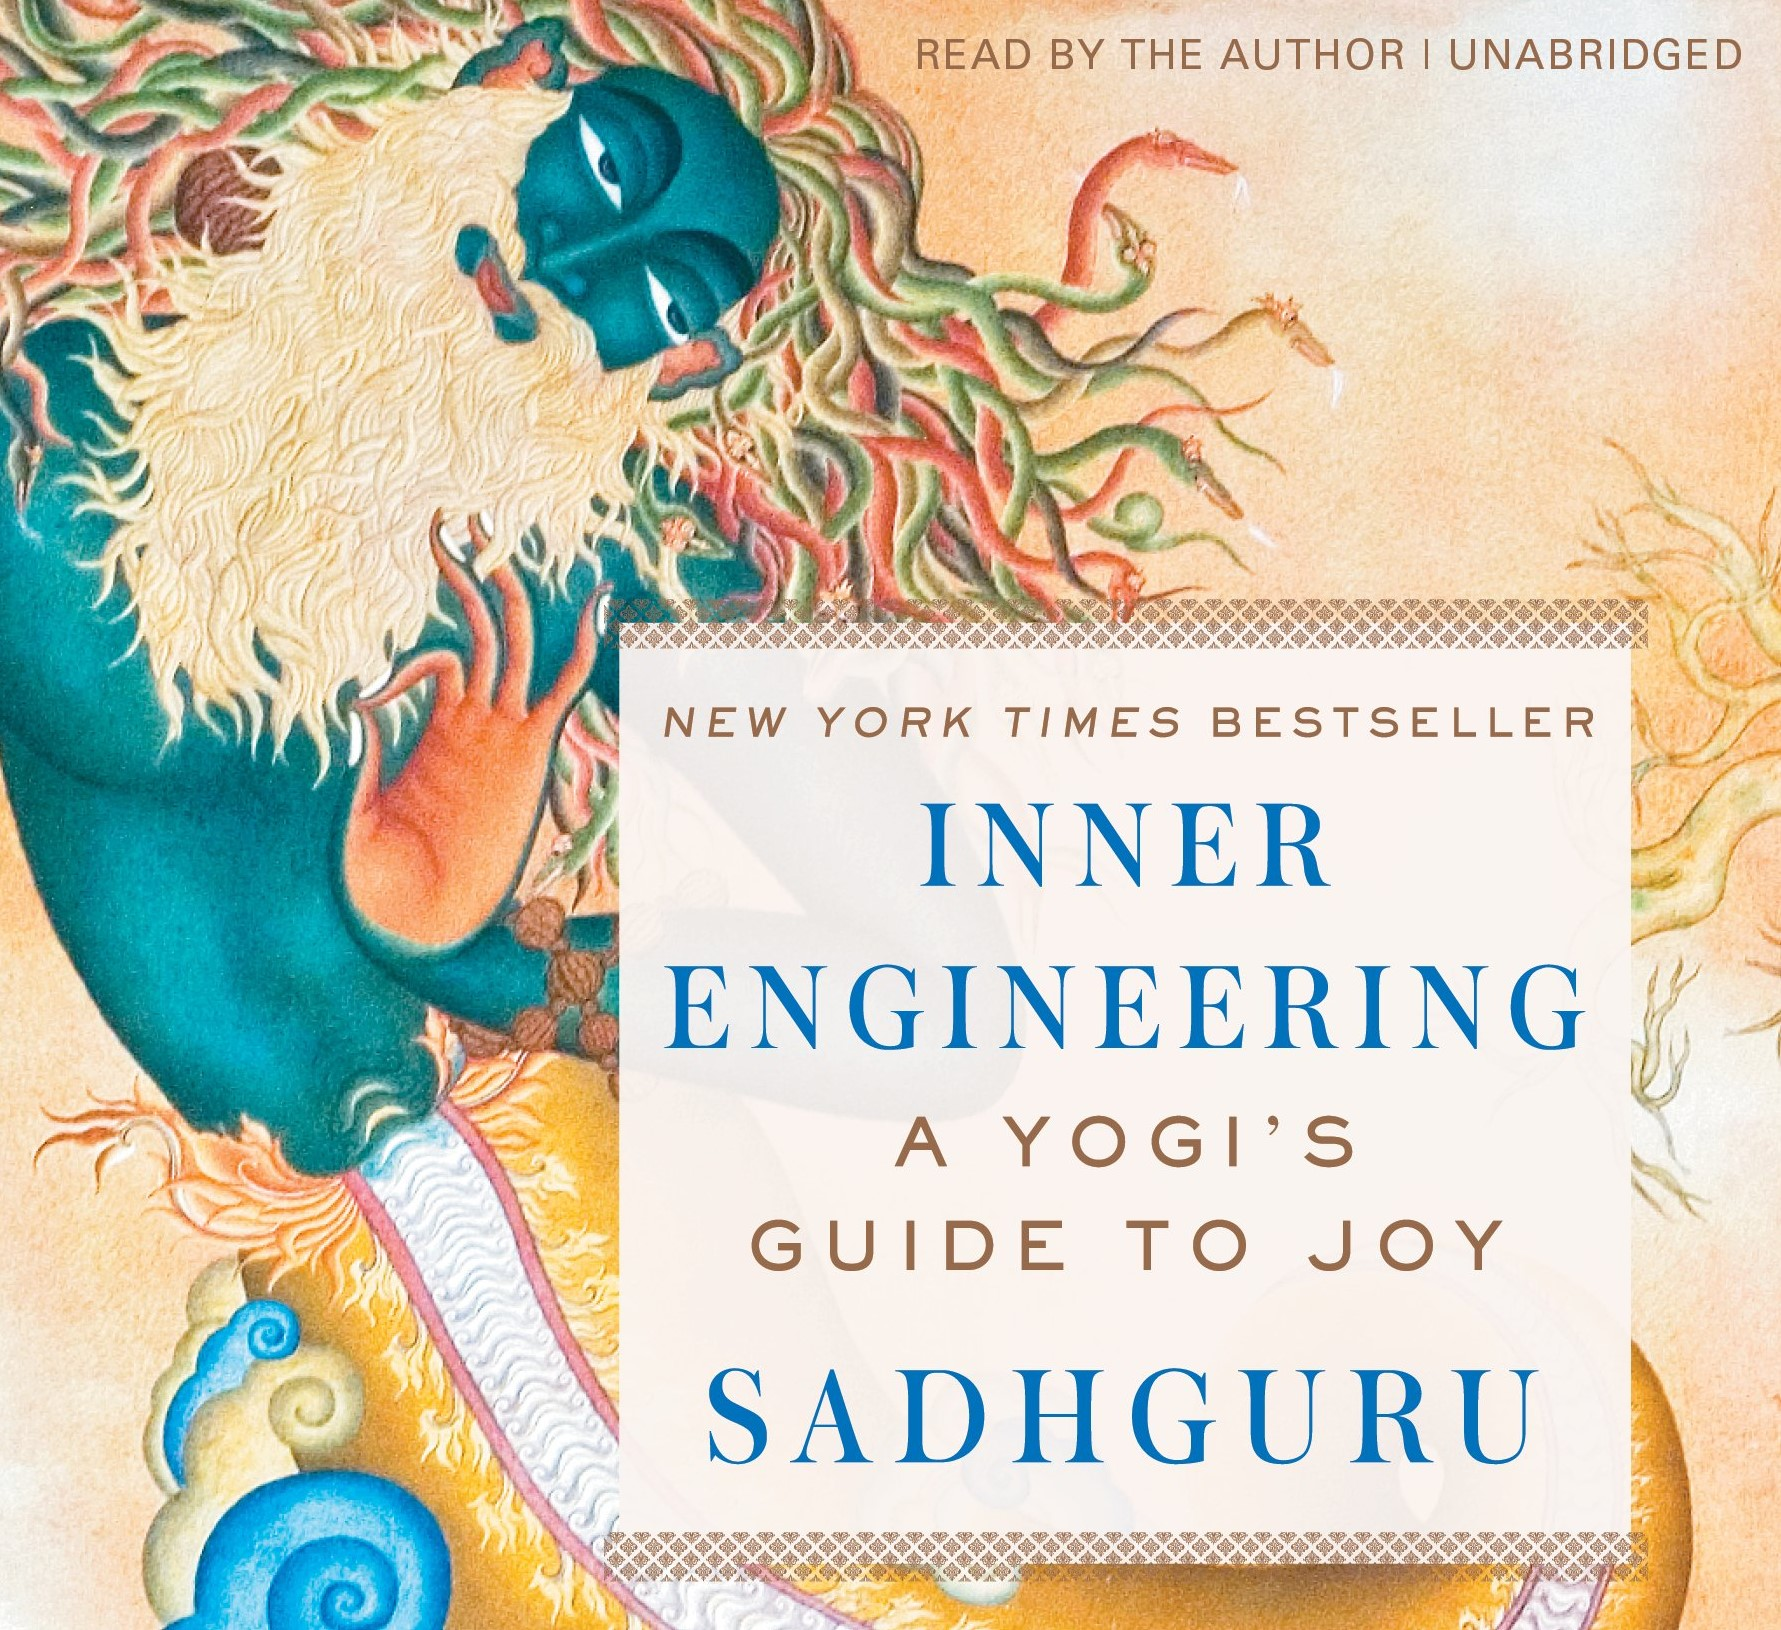 Free e-Book - Inner Engineering - A Yogi's Guide to Joy by Sadhguru (The New Yorks Times Bestseller)